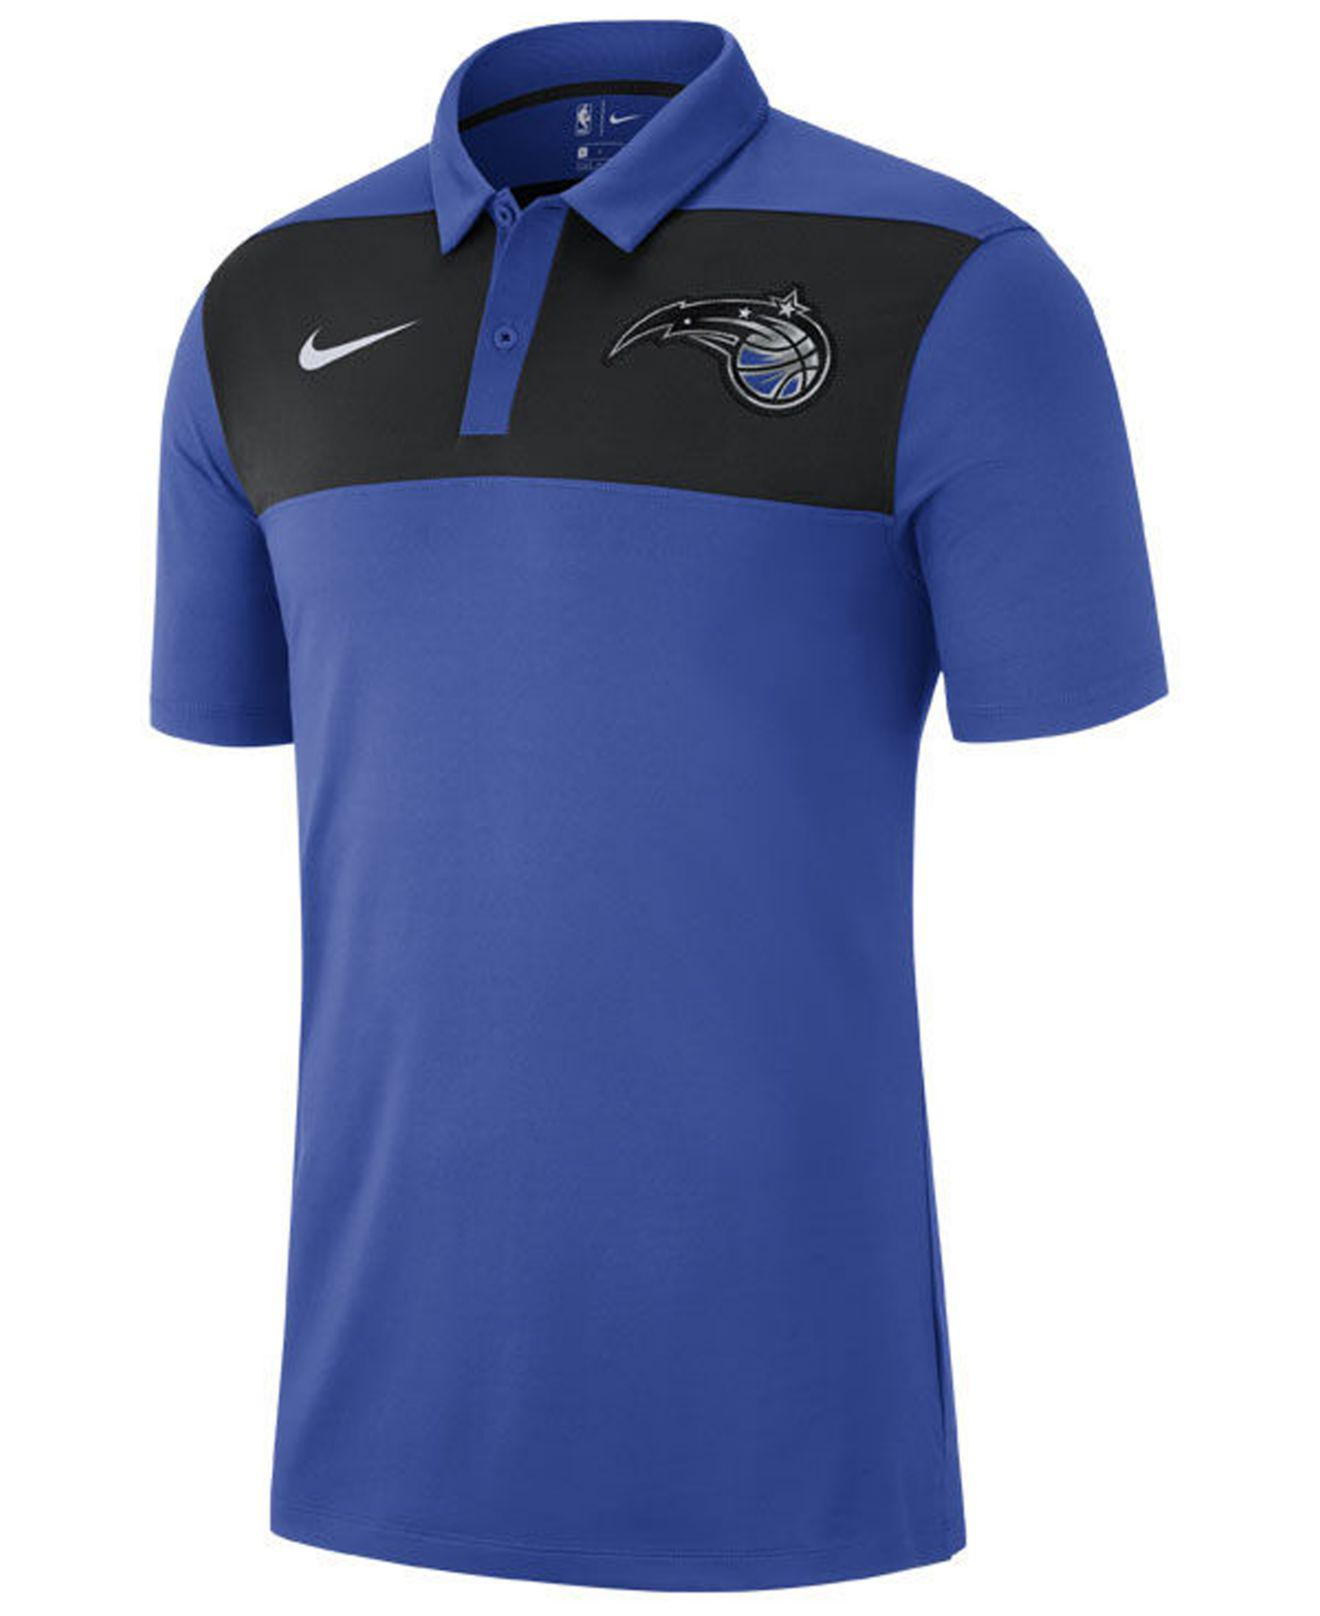 Lyst - Nike Orlando Magic Statement Polo in Blue for Men 1235551d5